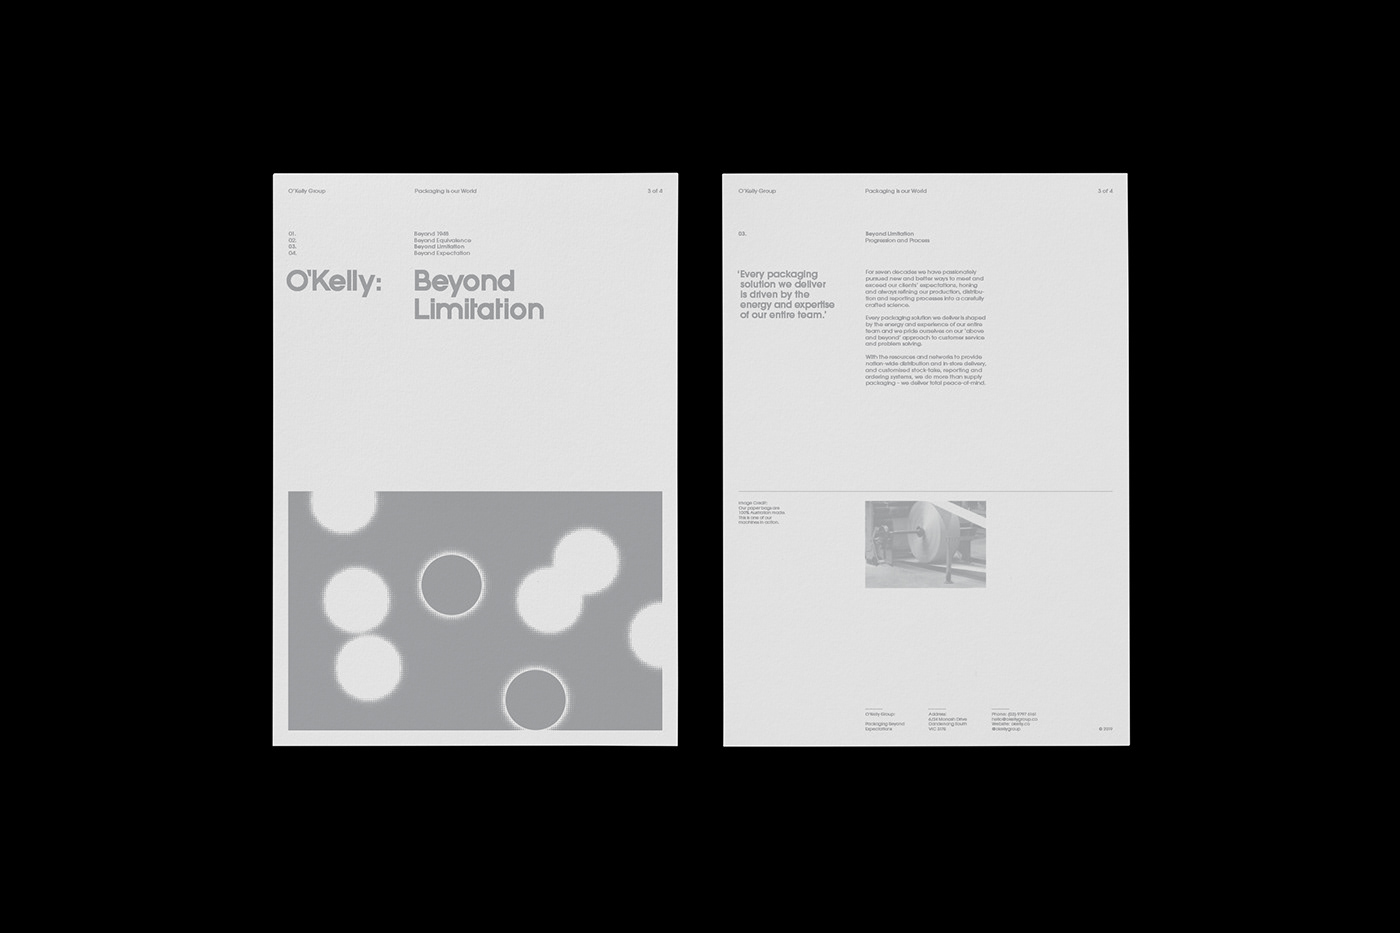 dots black and white vibration swiss Printing printing company Packaging Colourful  swiss graphic design